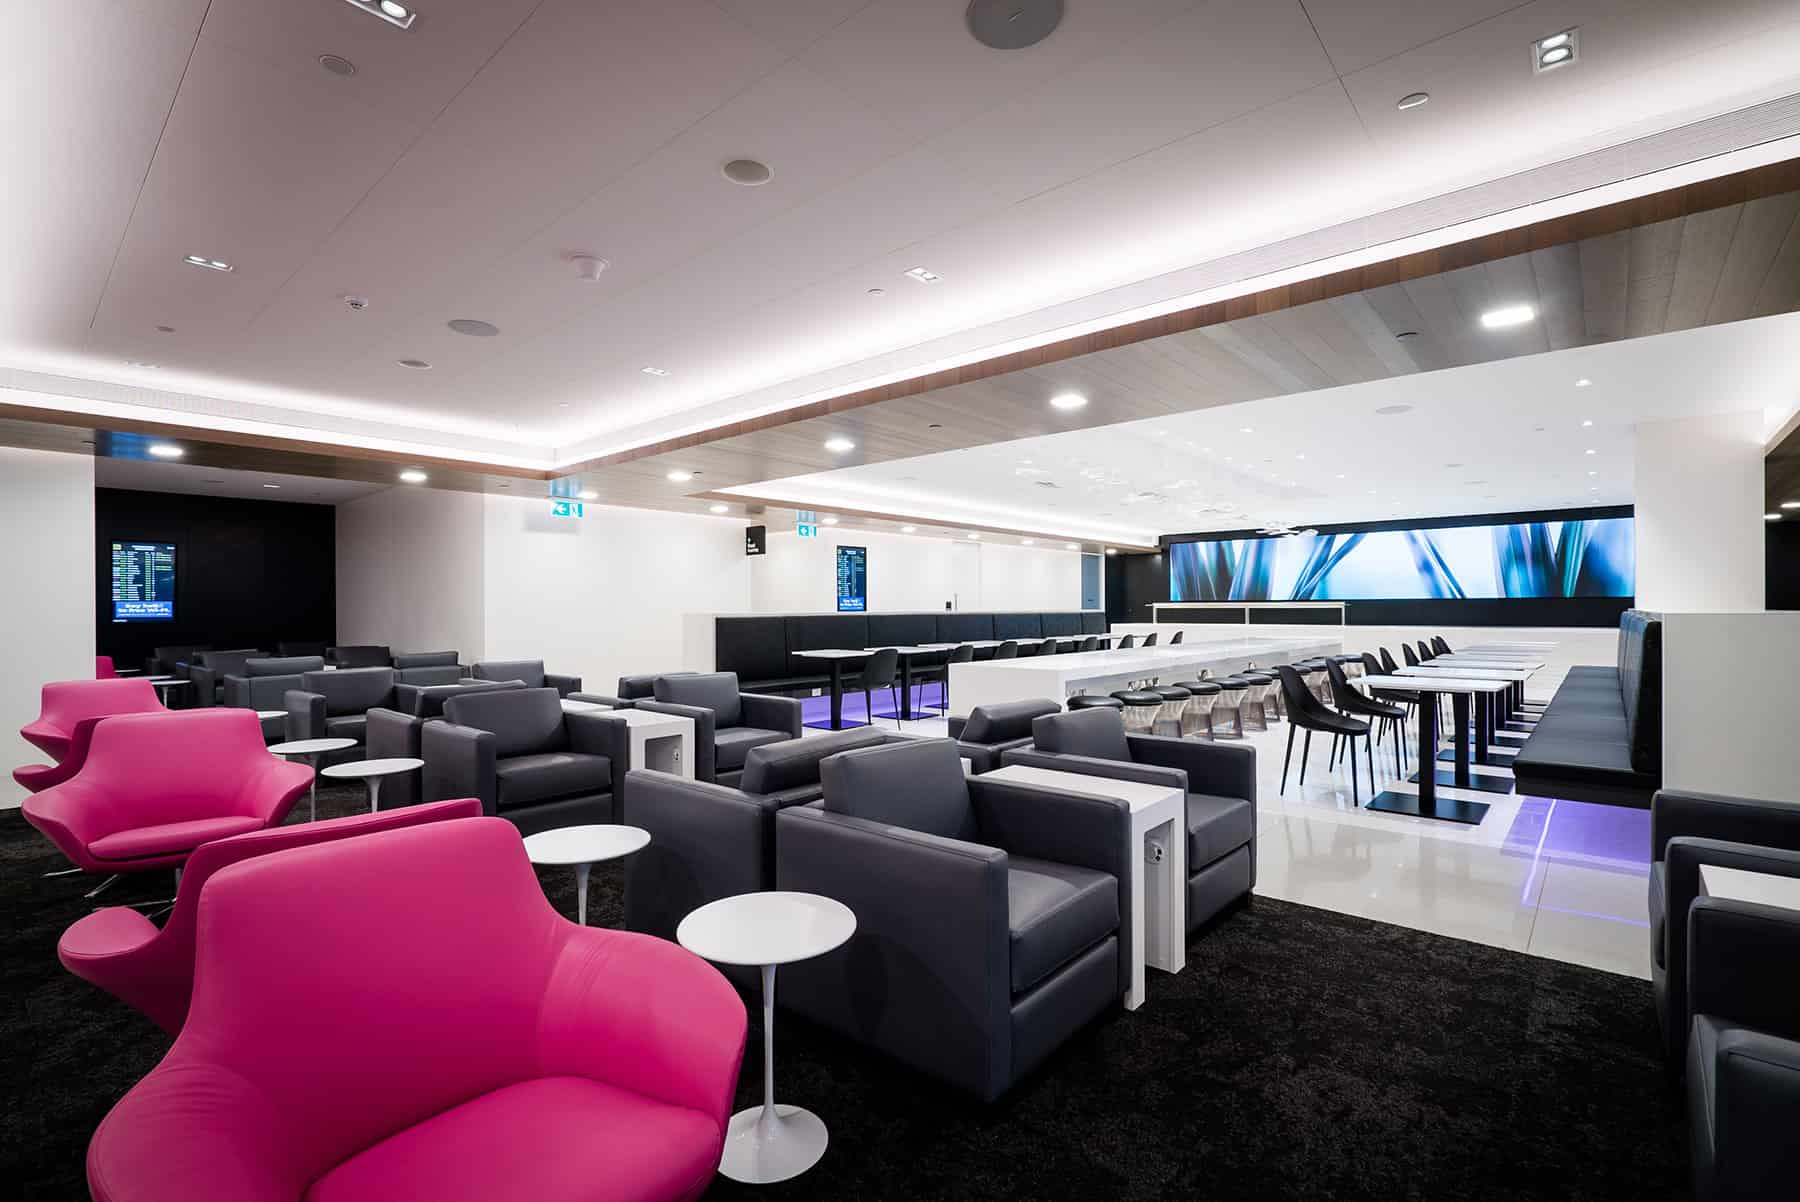 Air New Zealand - Melbourne Lounge